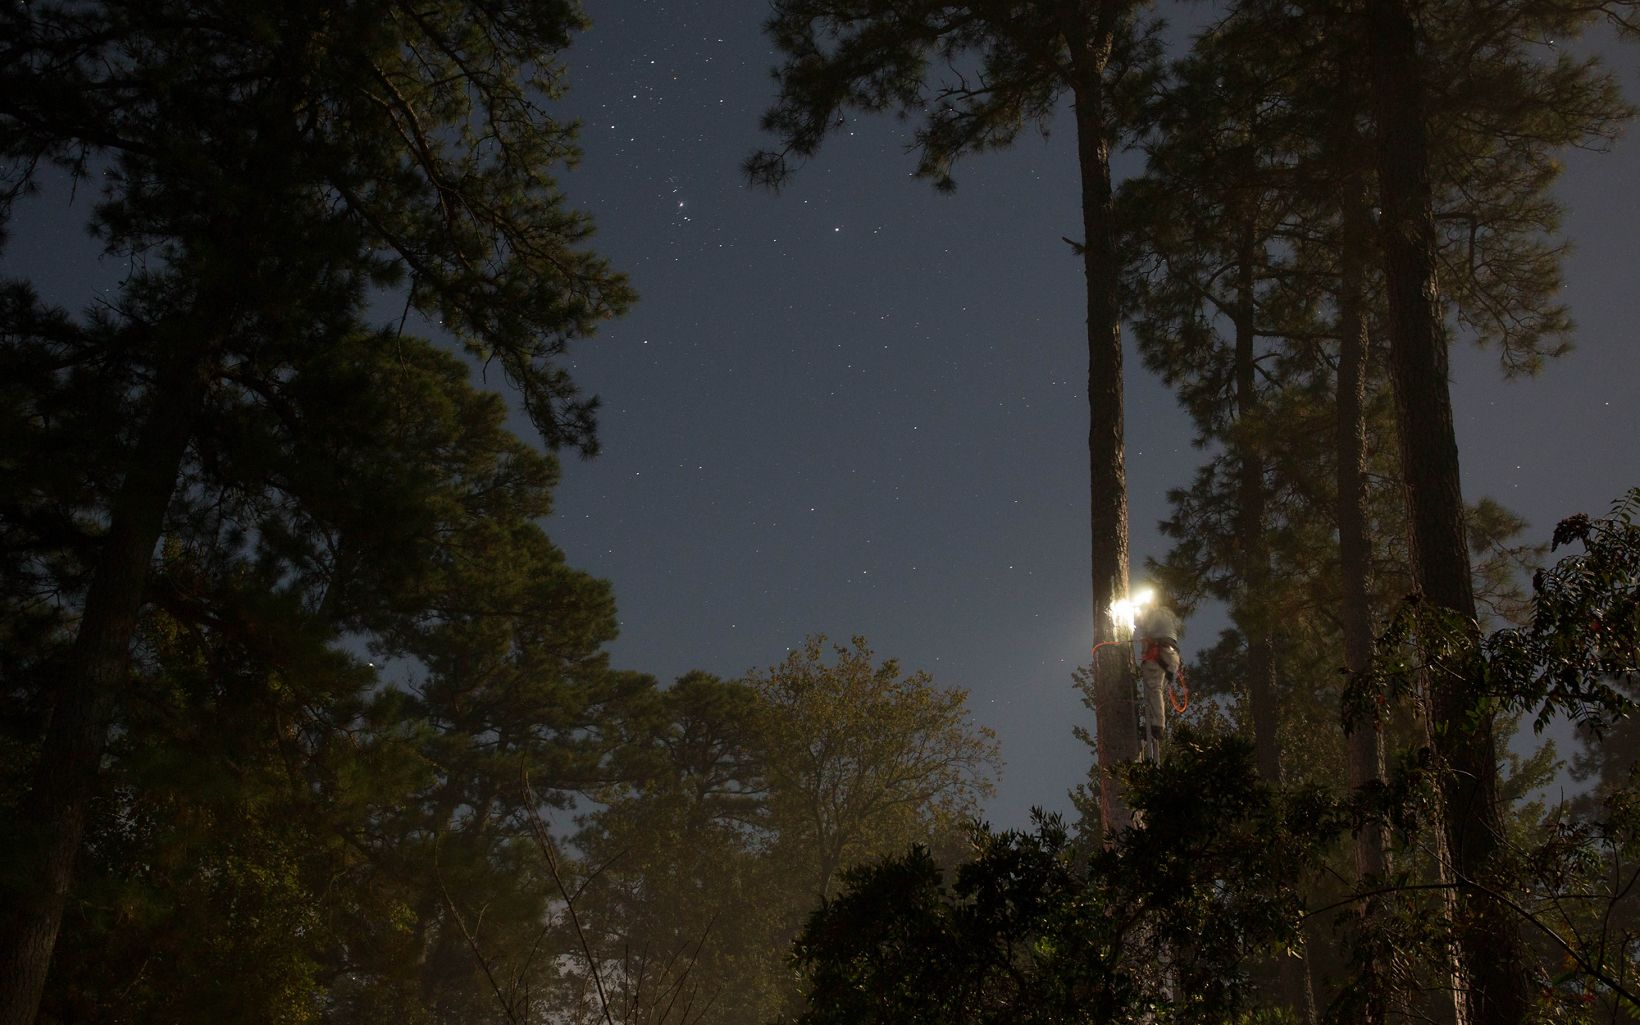 Nighttime view of a man standing at the top of a tall ladder braced against a pine tree. The light from his headlamp is a bright spot in the darkness. Stars are visible.